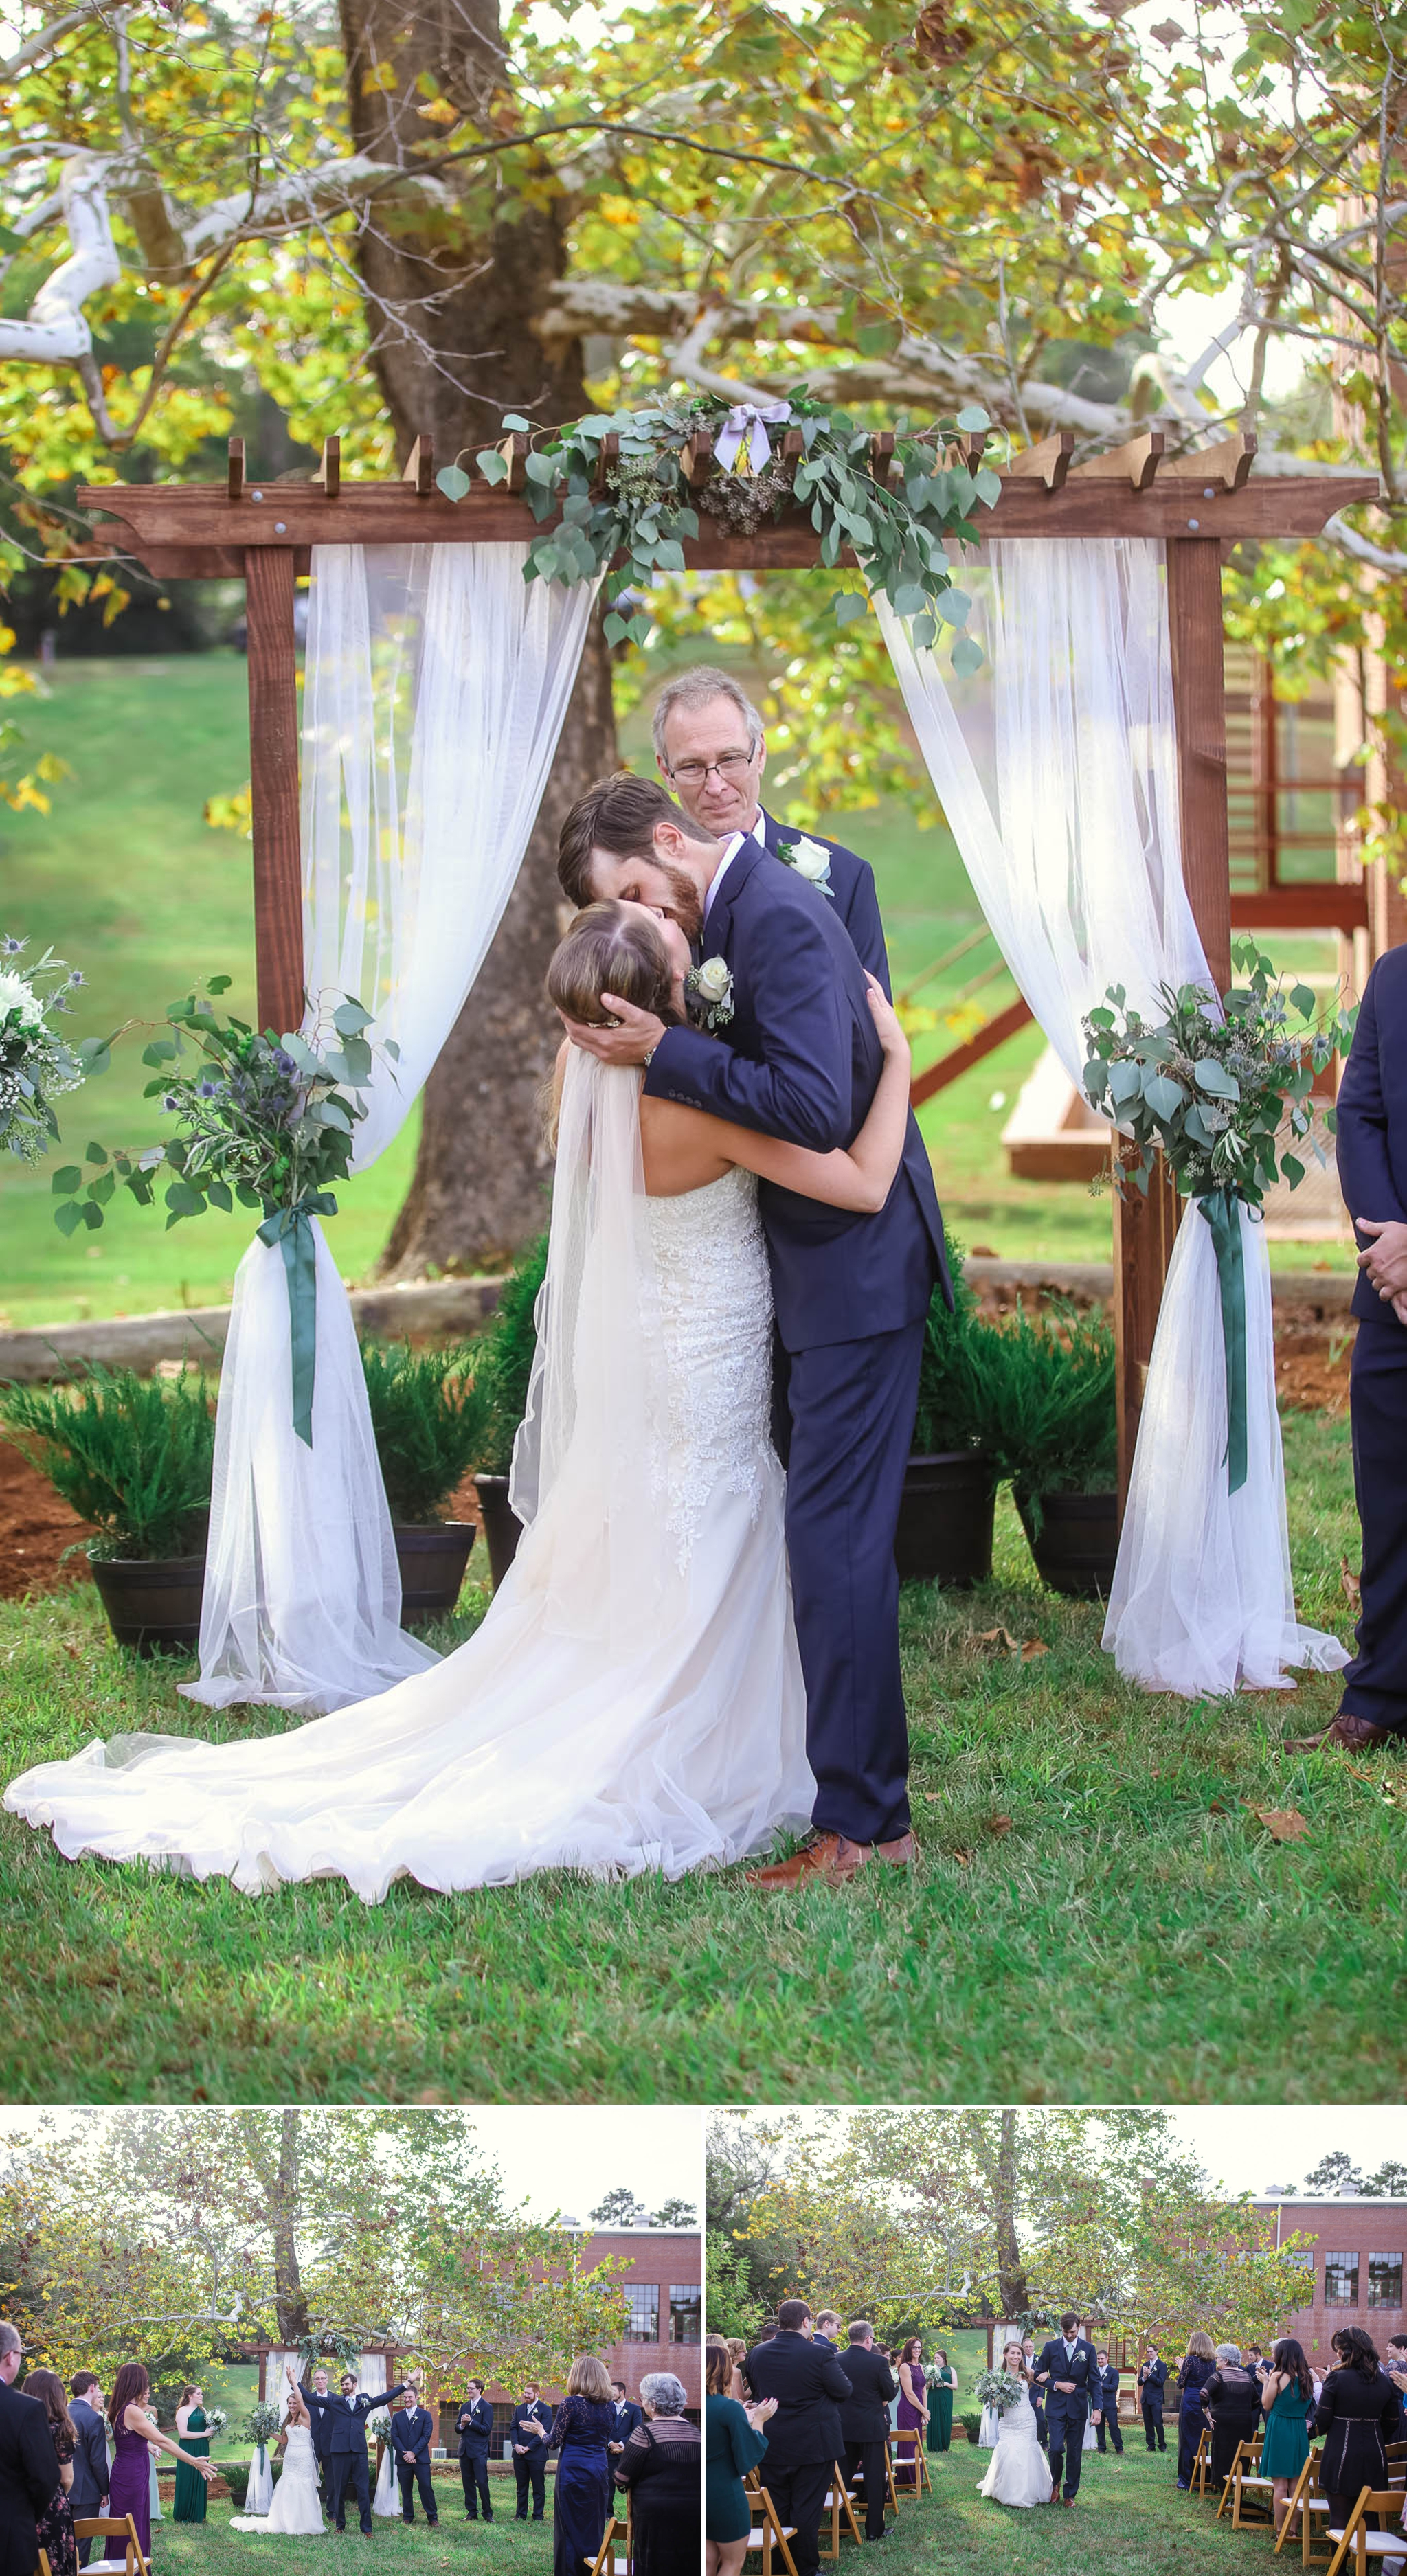 First Kiss at the ceremony between bride and groom at Chatham Mills in Pittsboro North Carolina Wedding Photography - Johanna Dye - Meredith and Brandon